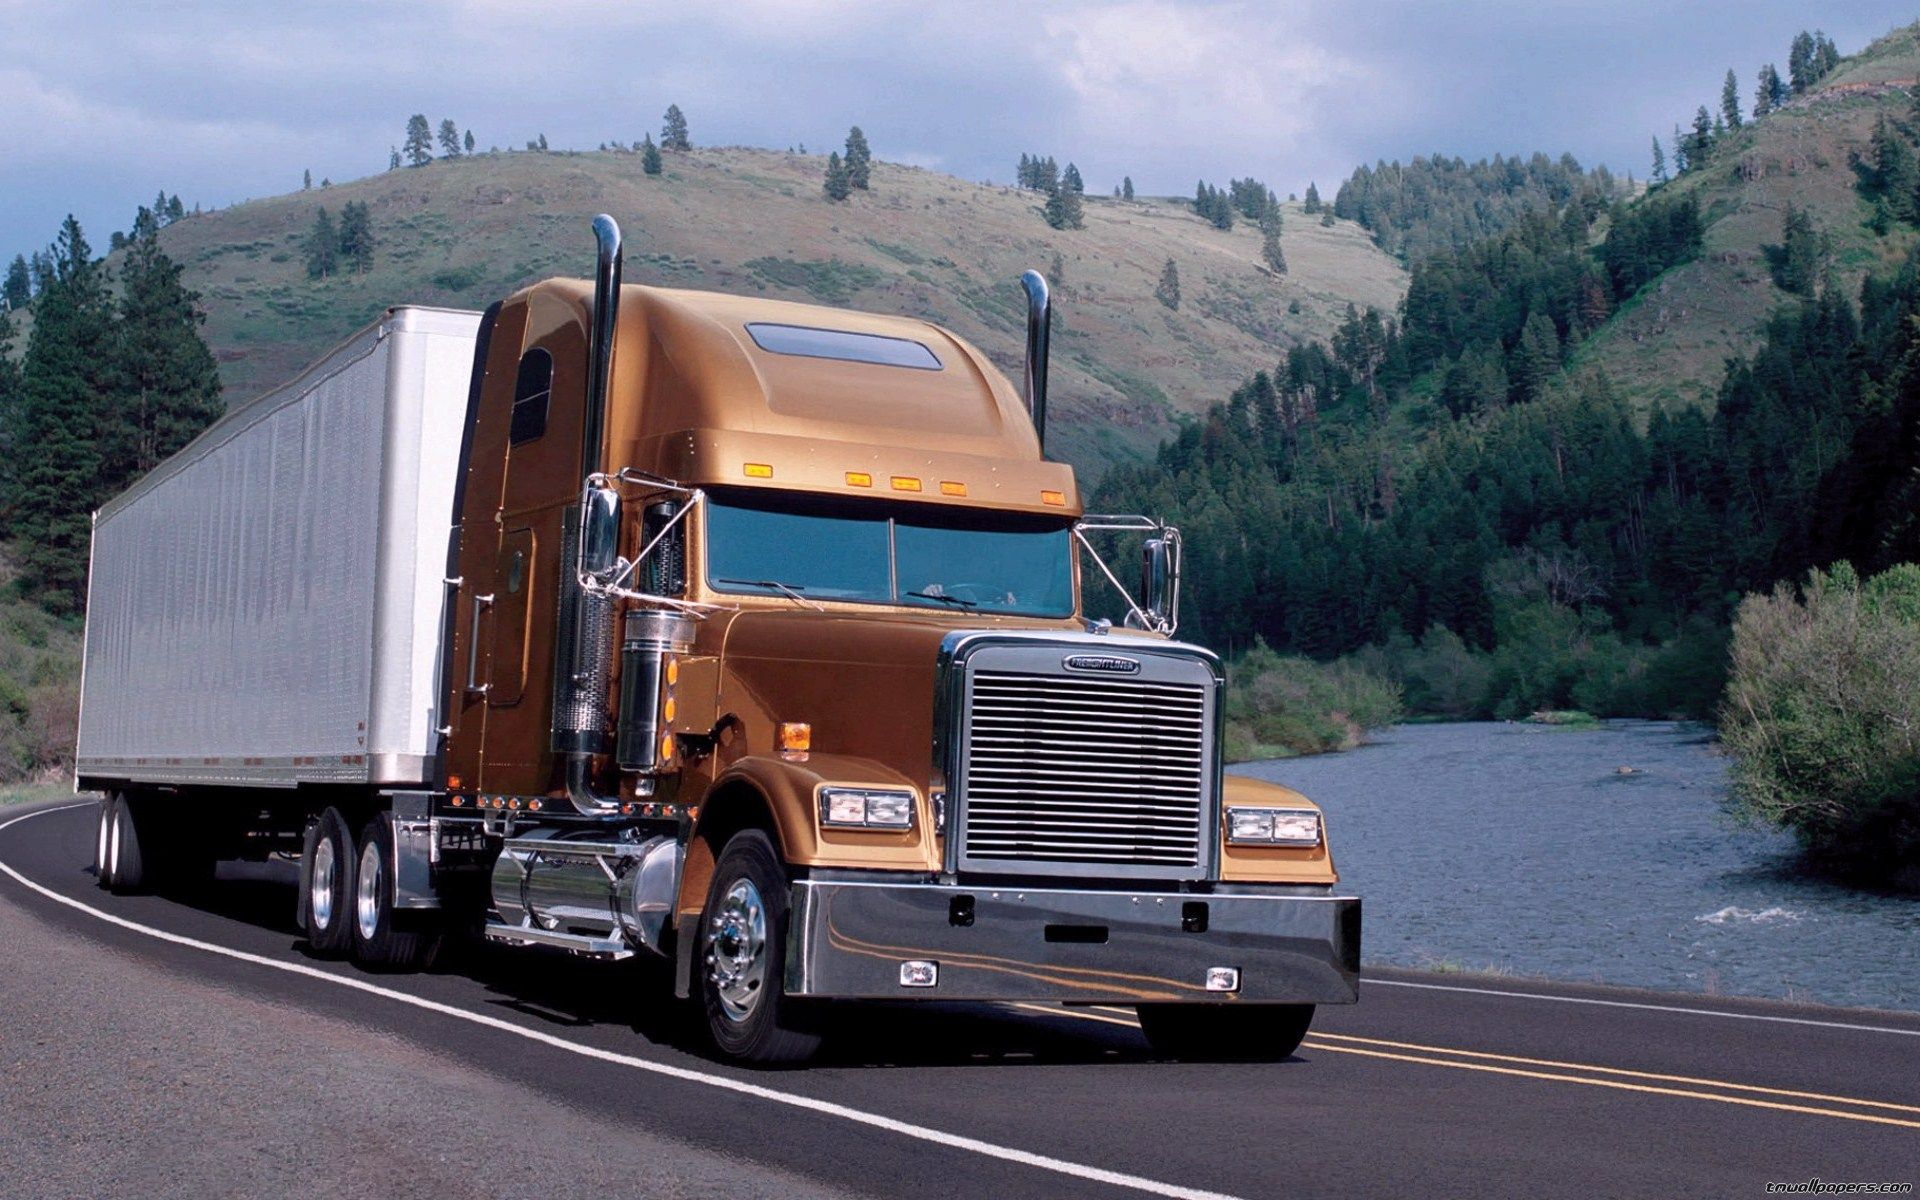 Best Of Truck Hq Wallpapers Full Hd Pictures 1920 1200 Truck